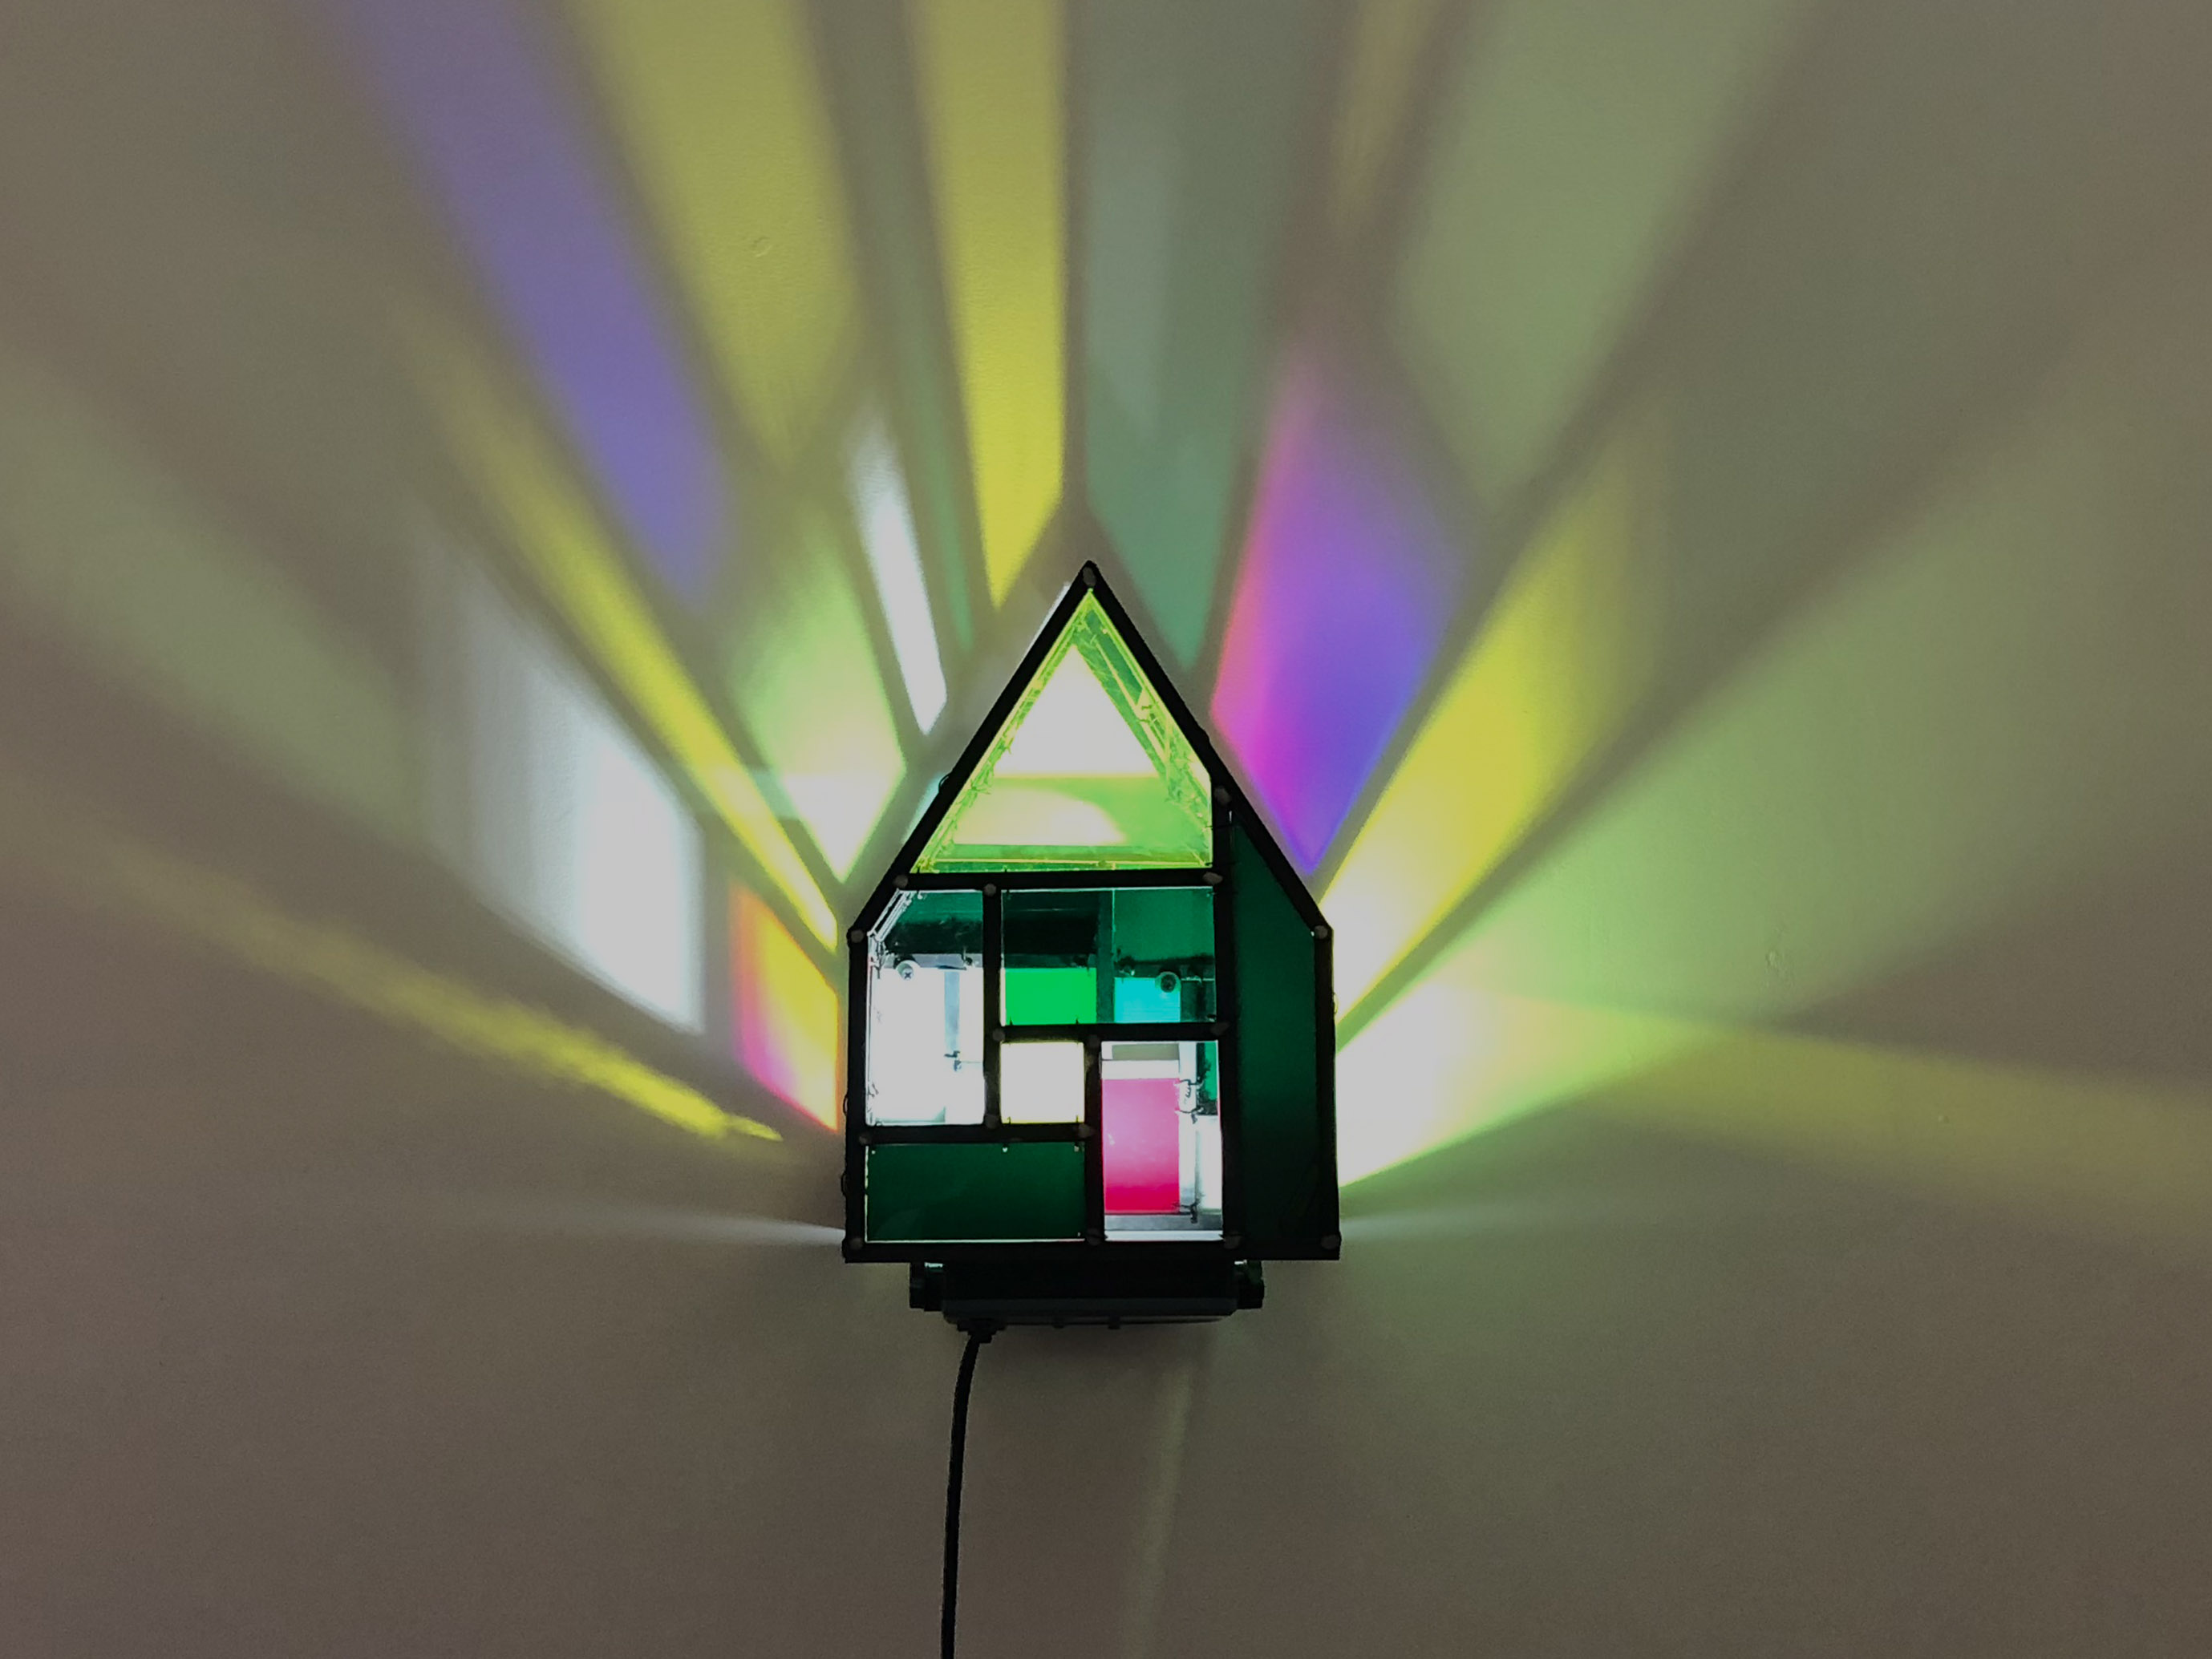 Tom Fruin, Fun House 2 Scale Model Studies, 2018. Steel, plexi, LED light, Unique work. 13.5 × 9.5 x 9.5 in or 34 × 24 x 24 cm.